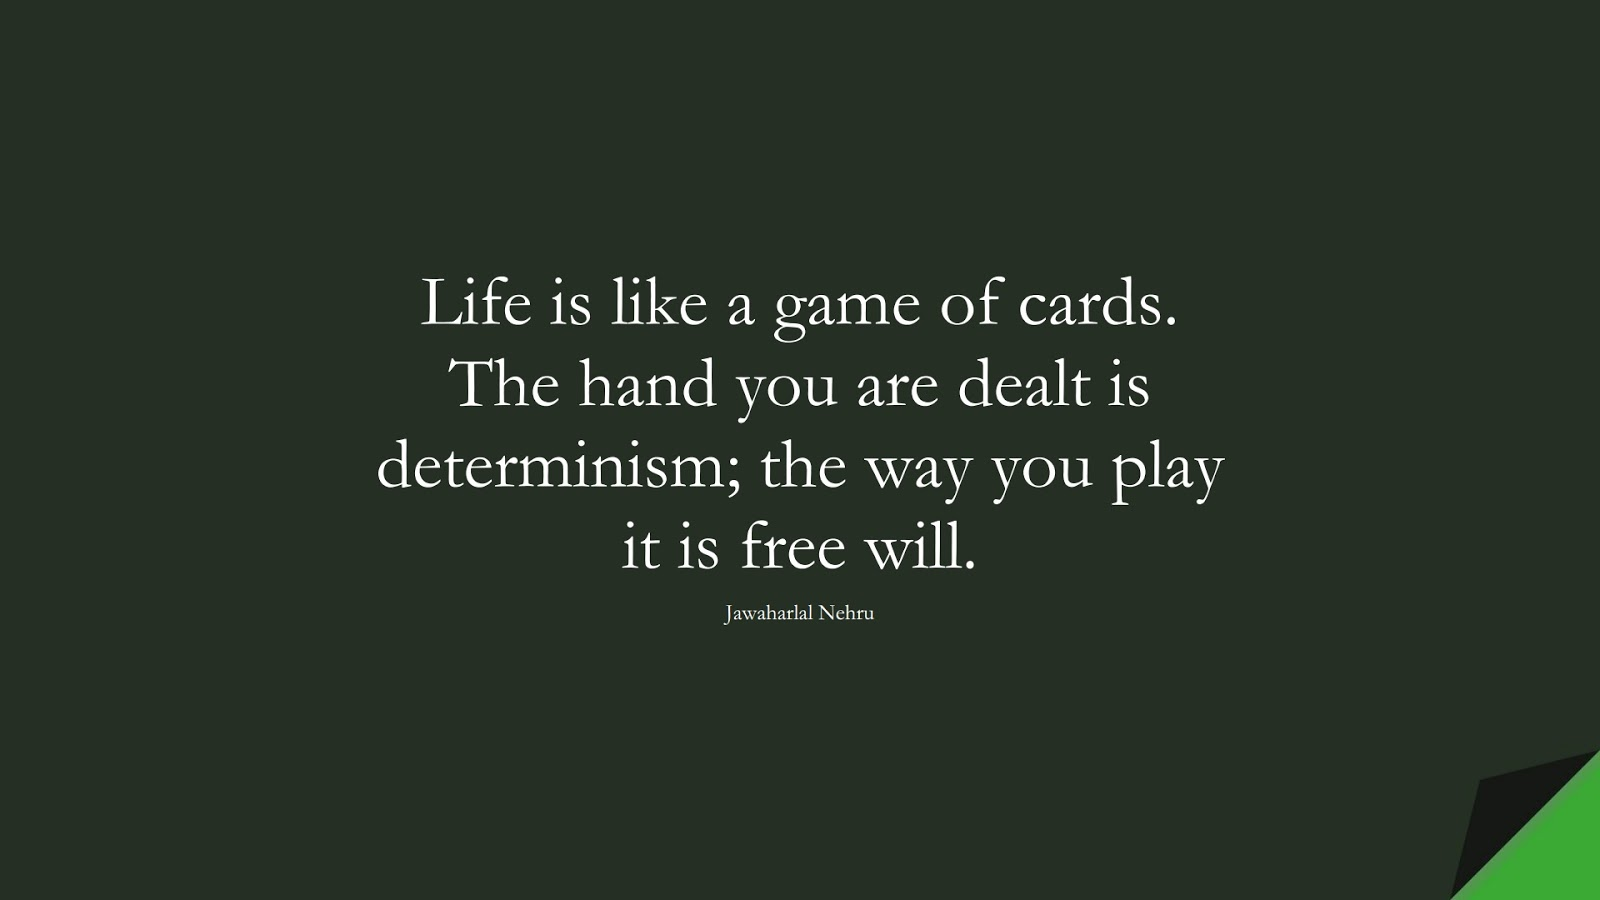 Life is like a game of cards. The hand you are dealt is determinism; the way you play it is free will. (Jawaharlal Nehru);  #BeingStrongQuotes